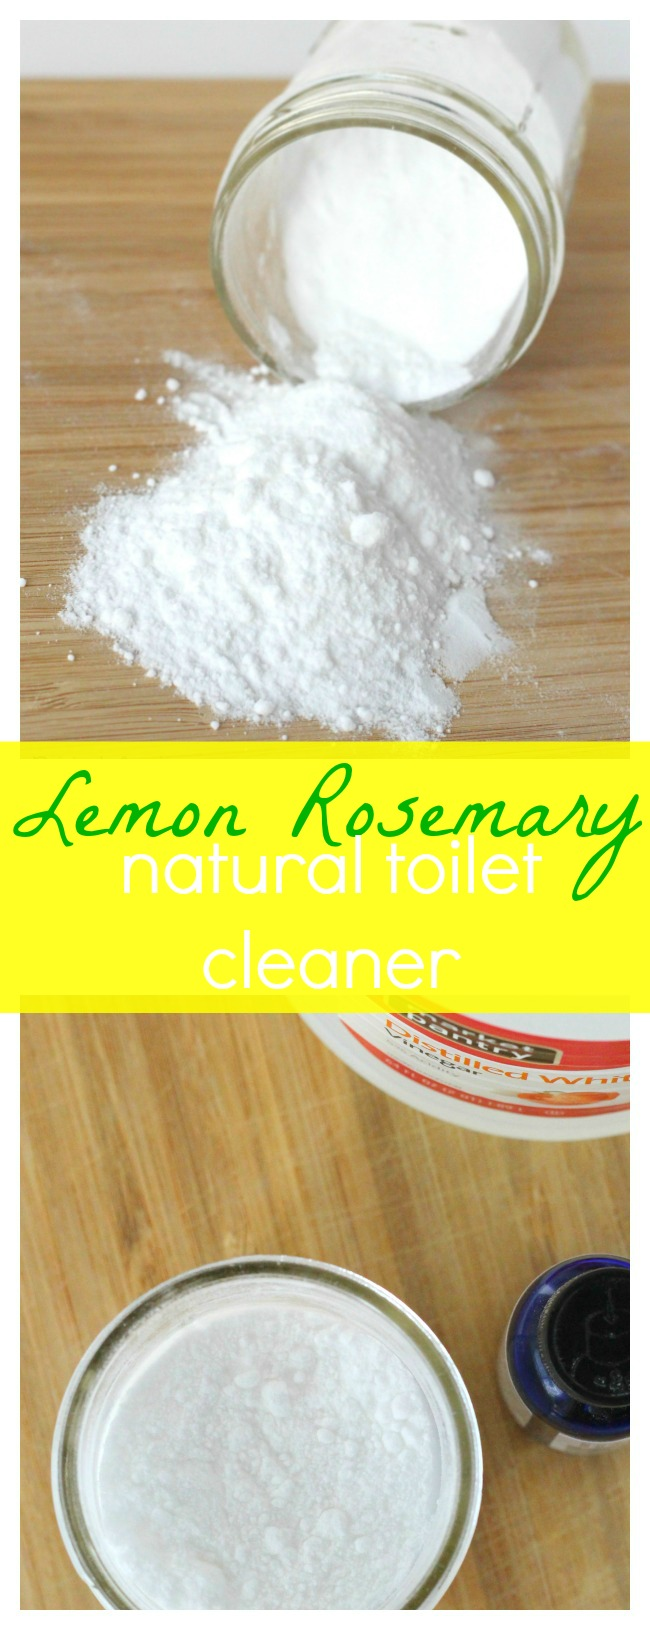 Easy Natural Toilet Cleaner 6 Bathroom Toilet Cleaning Tips